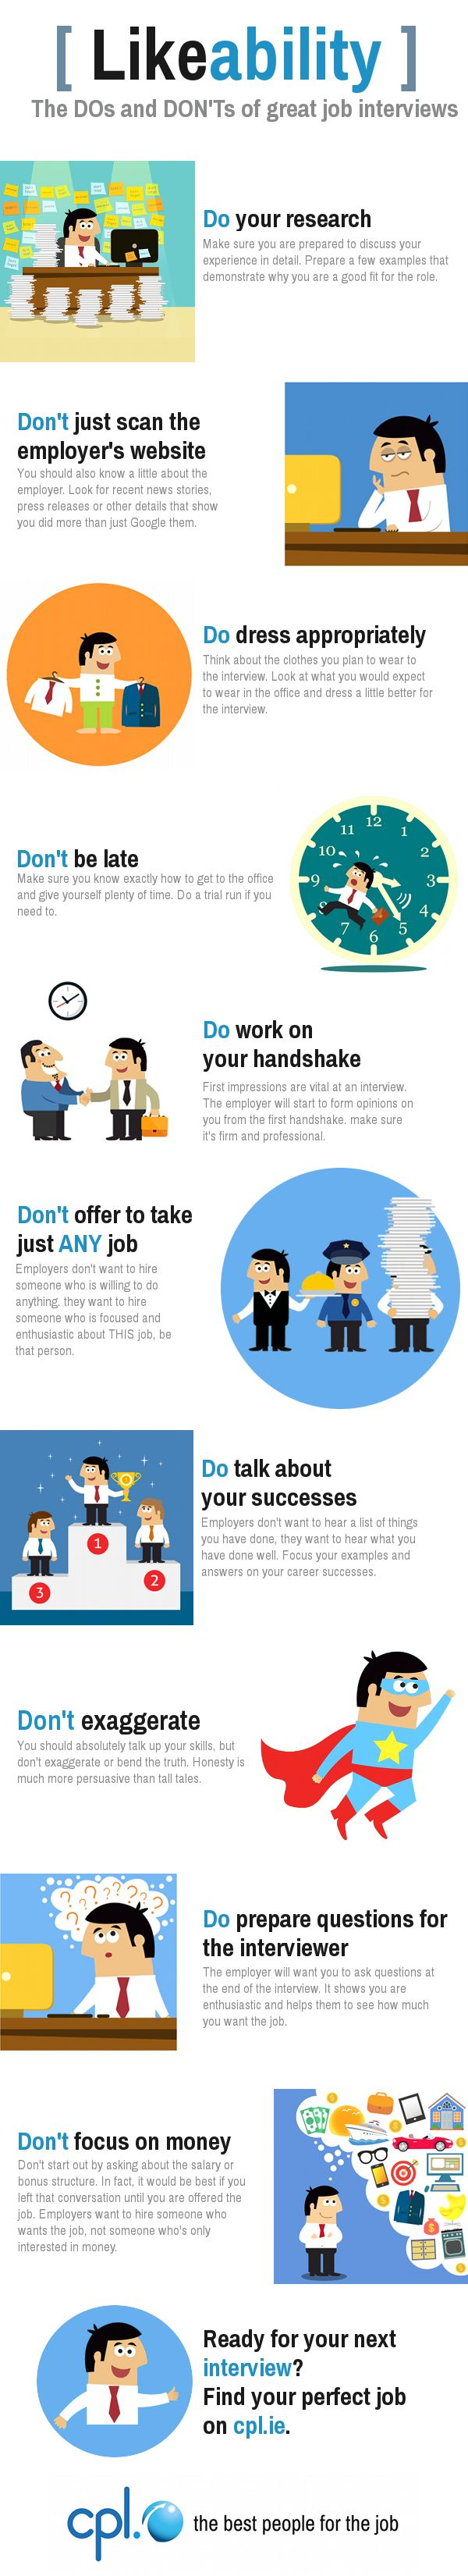 Infographic : The Dos And Donu0027ts Of Great Job Interviews From Cpl.ie #  Interviewtips